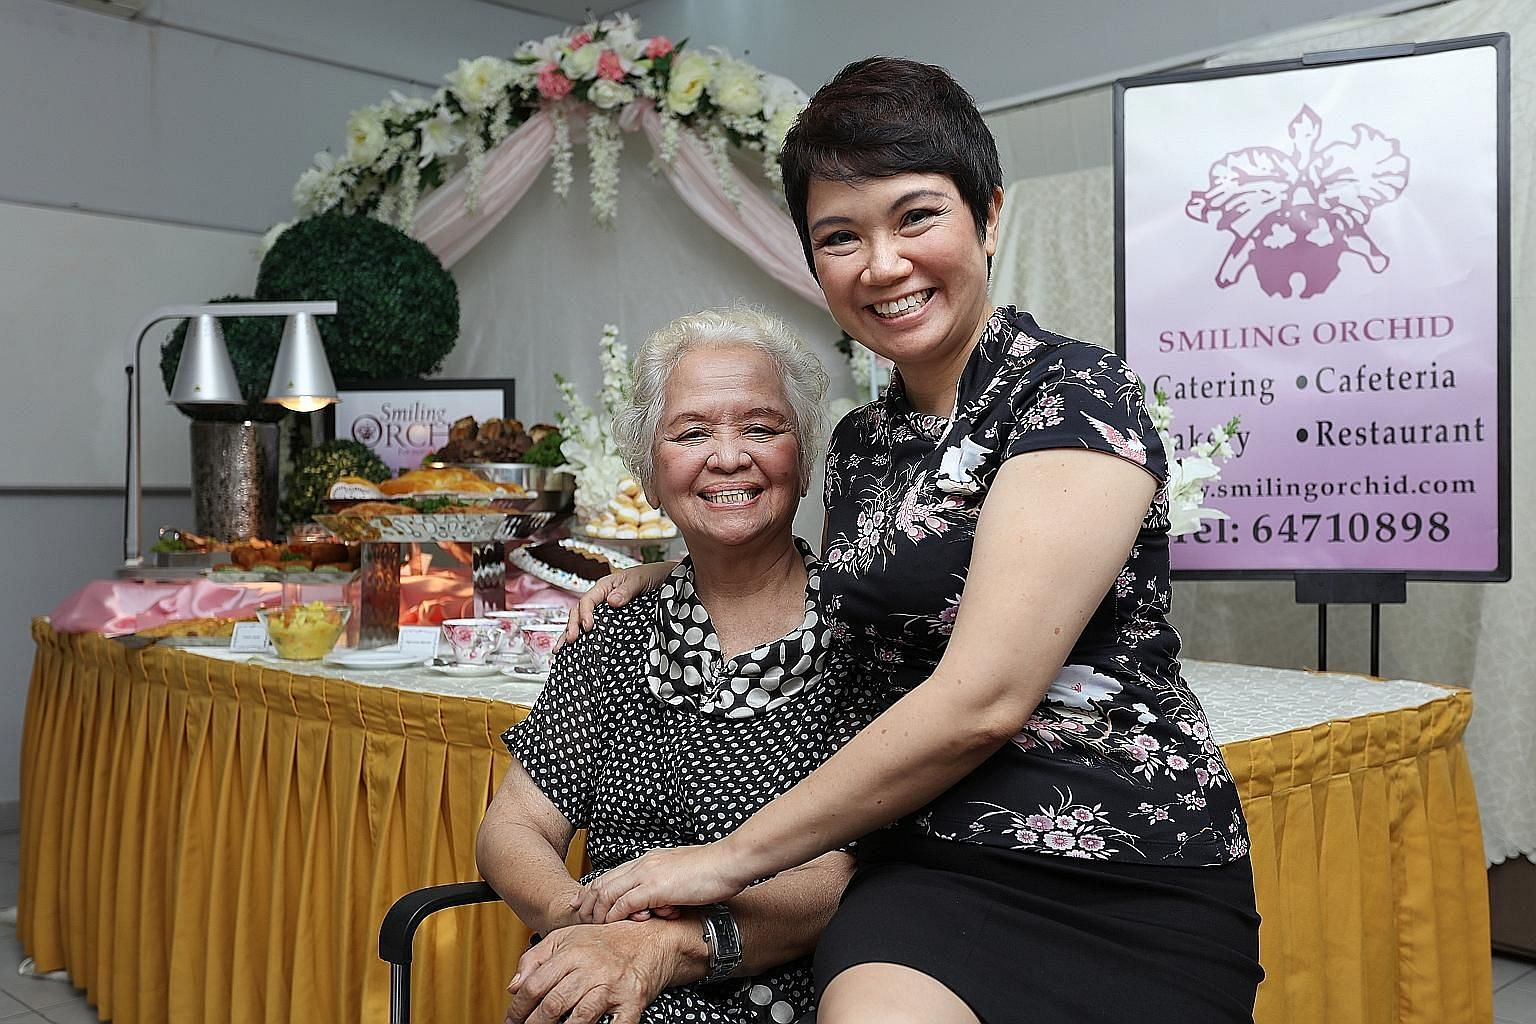 Mrs Choo Yen Lan and her younger daughter Meilyn Choo-Jaimon, who is now the company director. Ms Choo-Jaimon said her greatest wish would be to see her mother's business etched in history as a heritage brand.